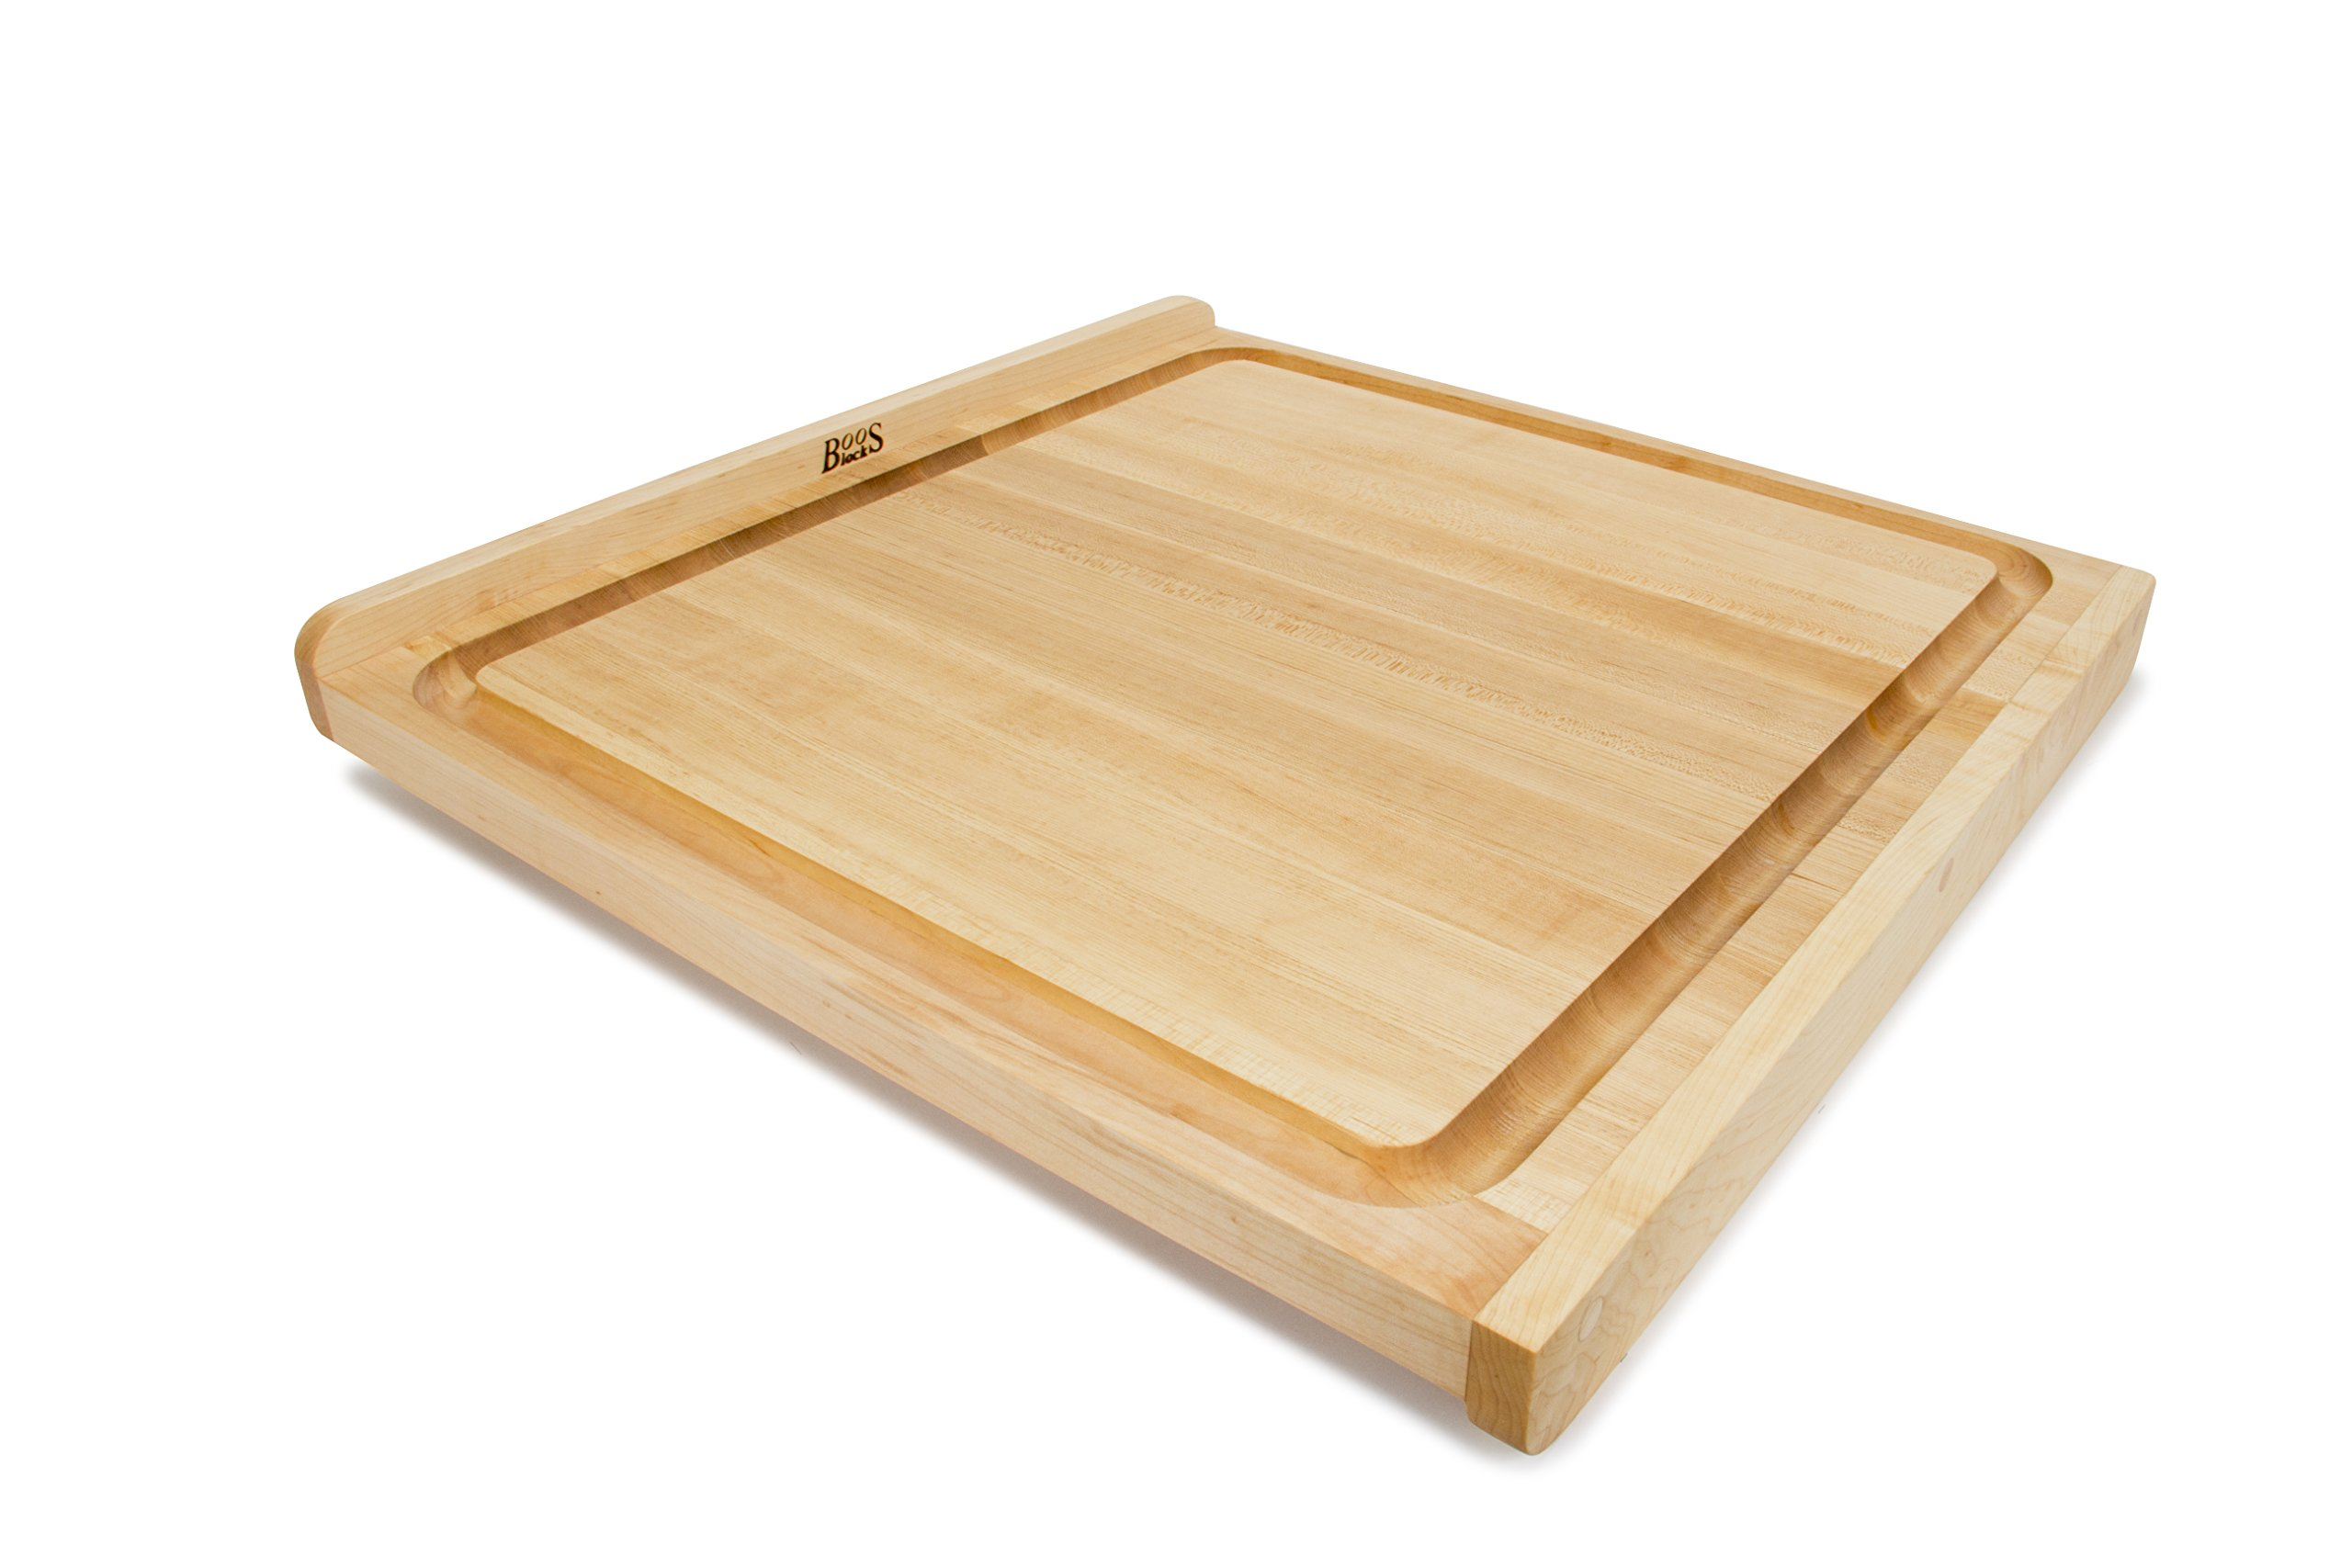 John Boos Block KNEB24S Maple Wood Countertop Reversible Edge Grain Cutting Board with Gravy Groove, 23.75 Inches x 23.75 Inches x 1.25 Inches